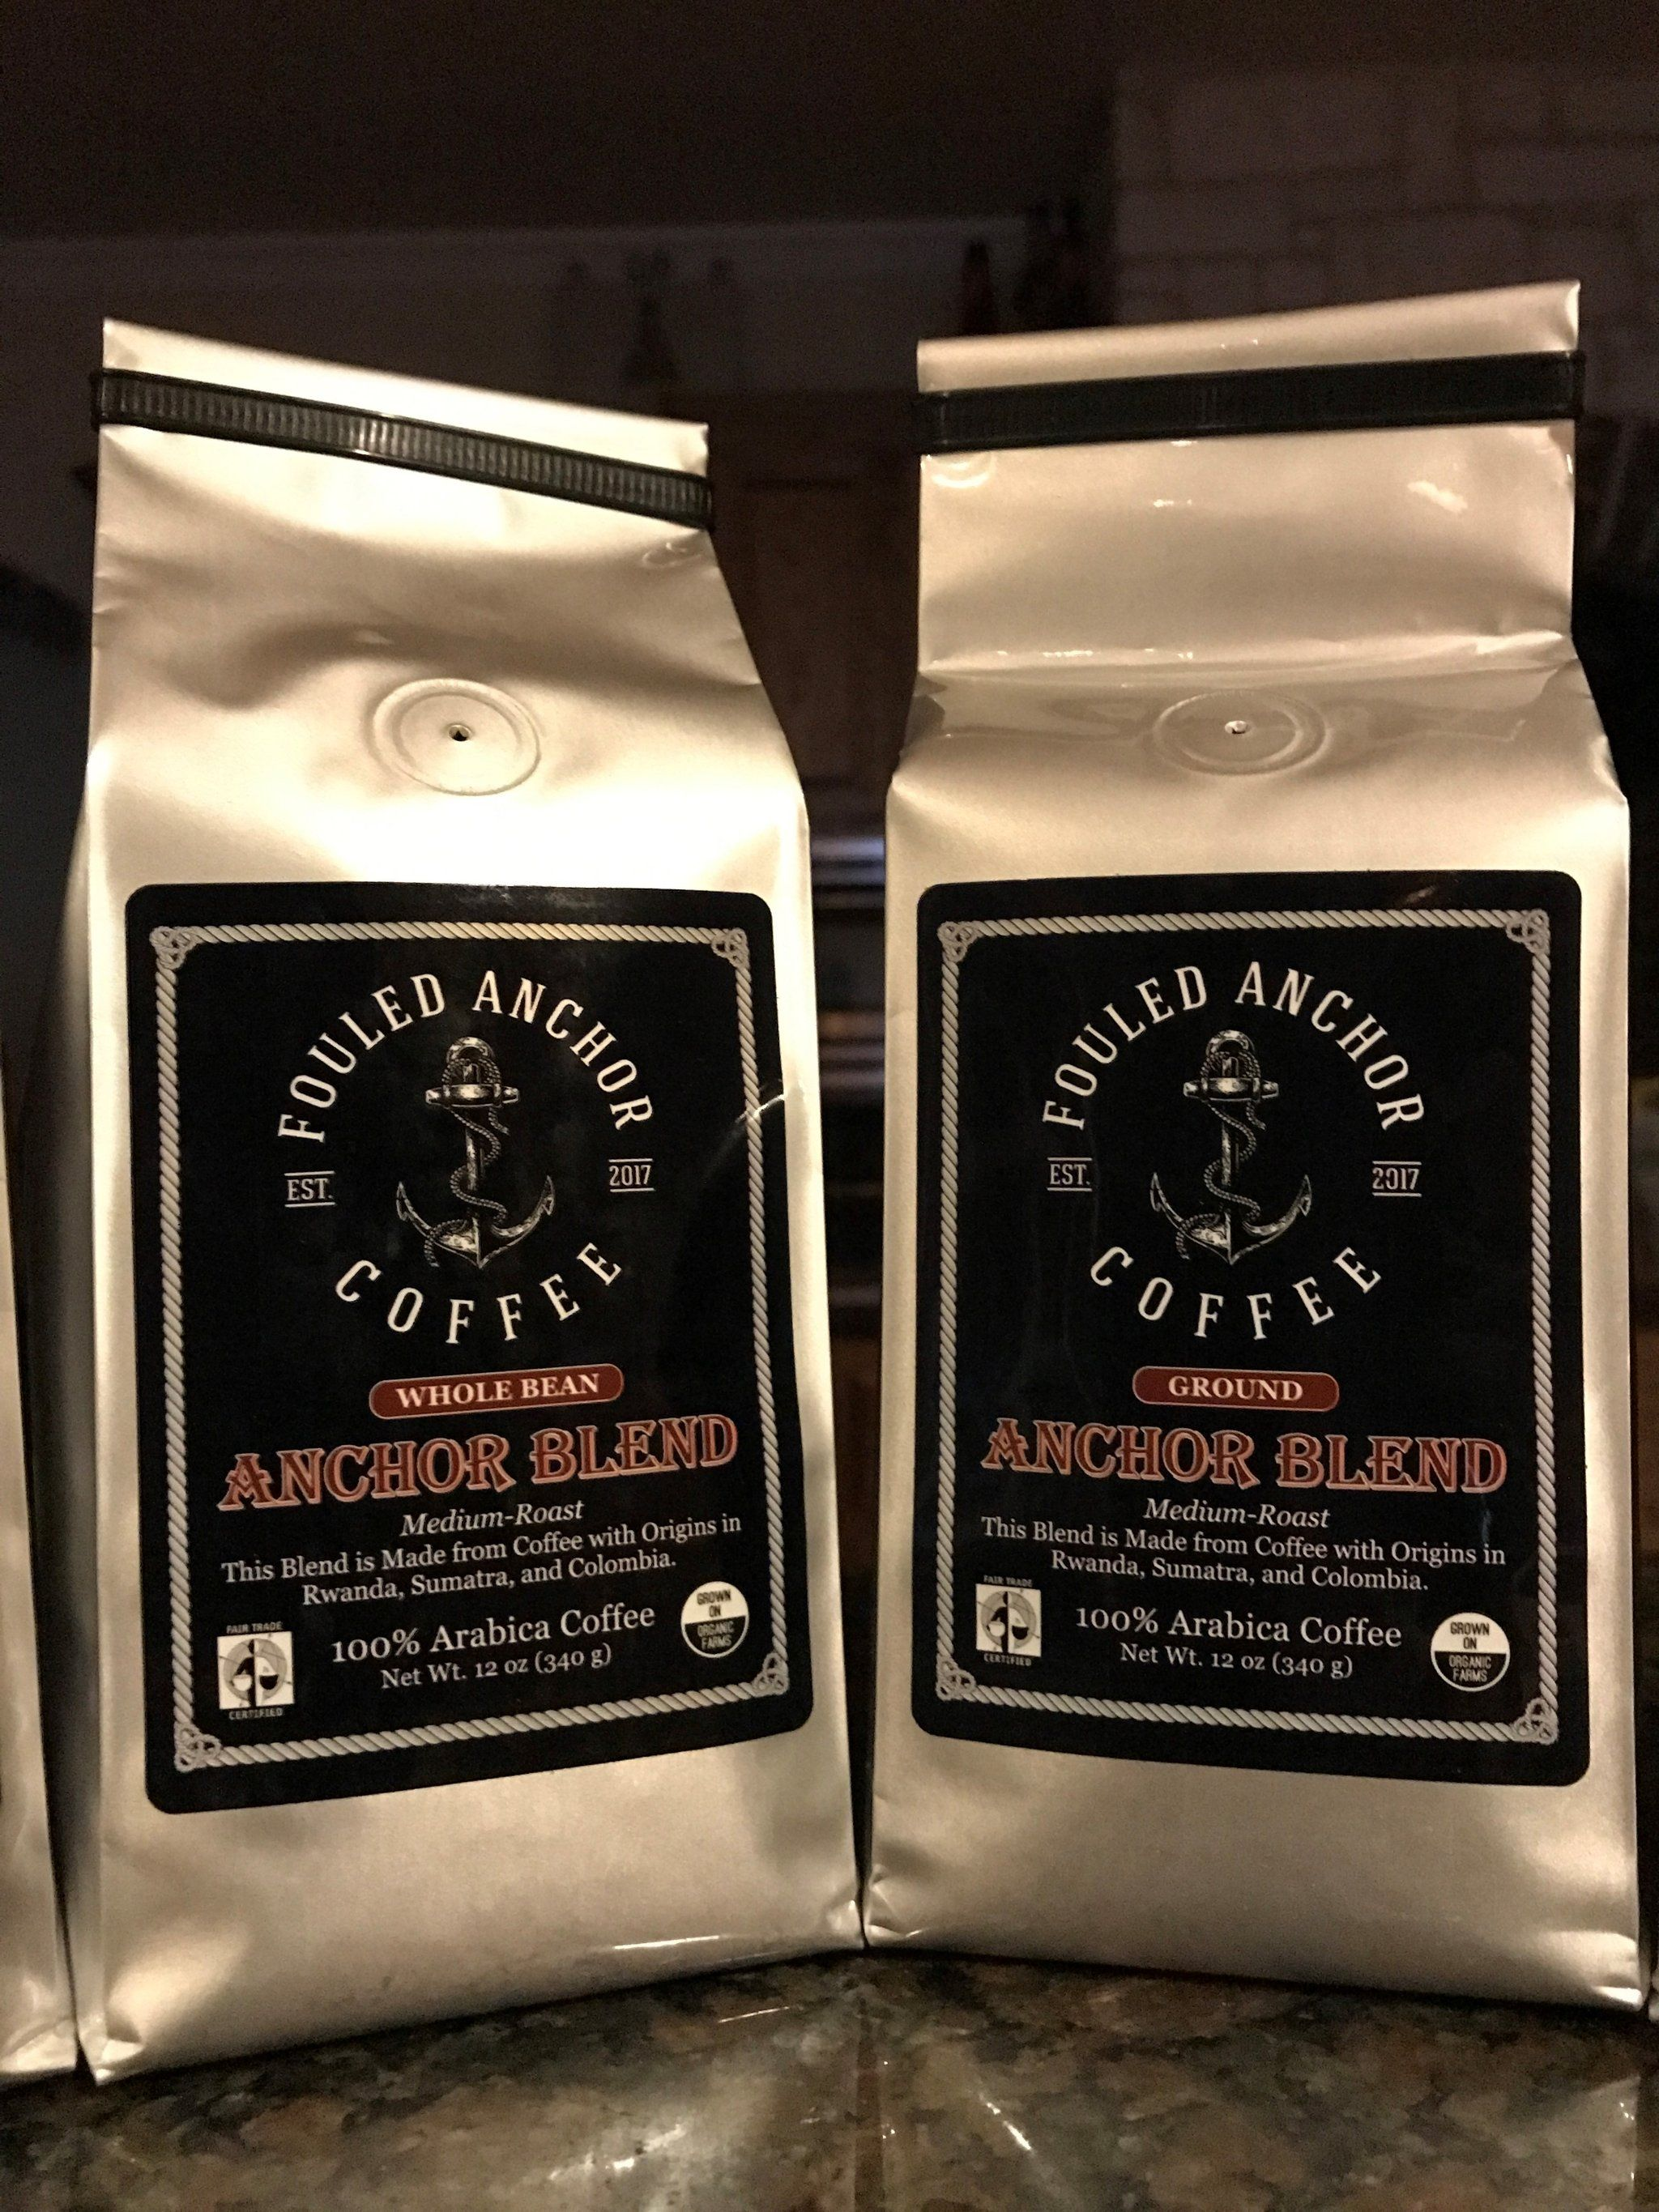 Ground whole bean specialty gourmet coffee organic fair trade small batch roasted veteran owned operated pour over k-cup french press cold brew kuerig keurig